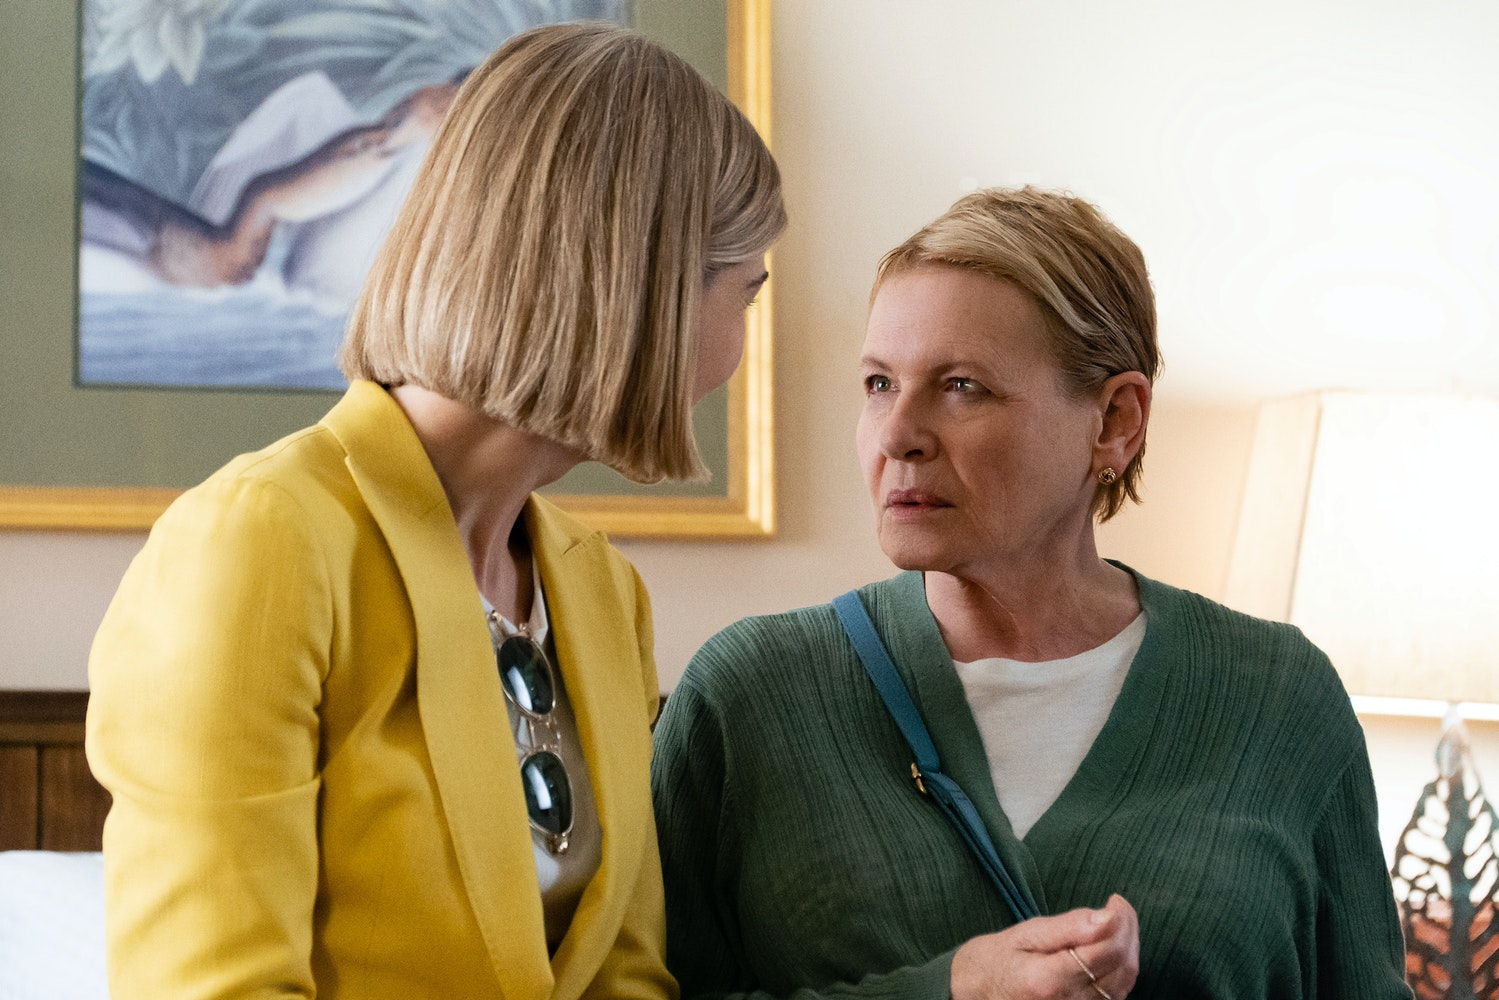 rosamund pike (left) and dianne wiest (right) in i care a lot